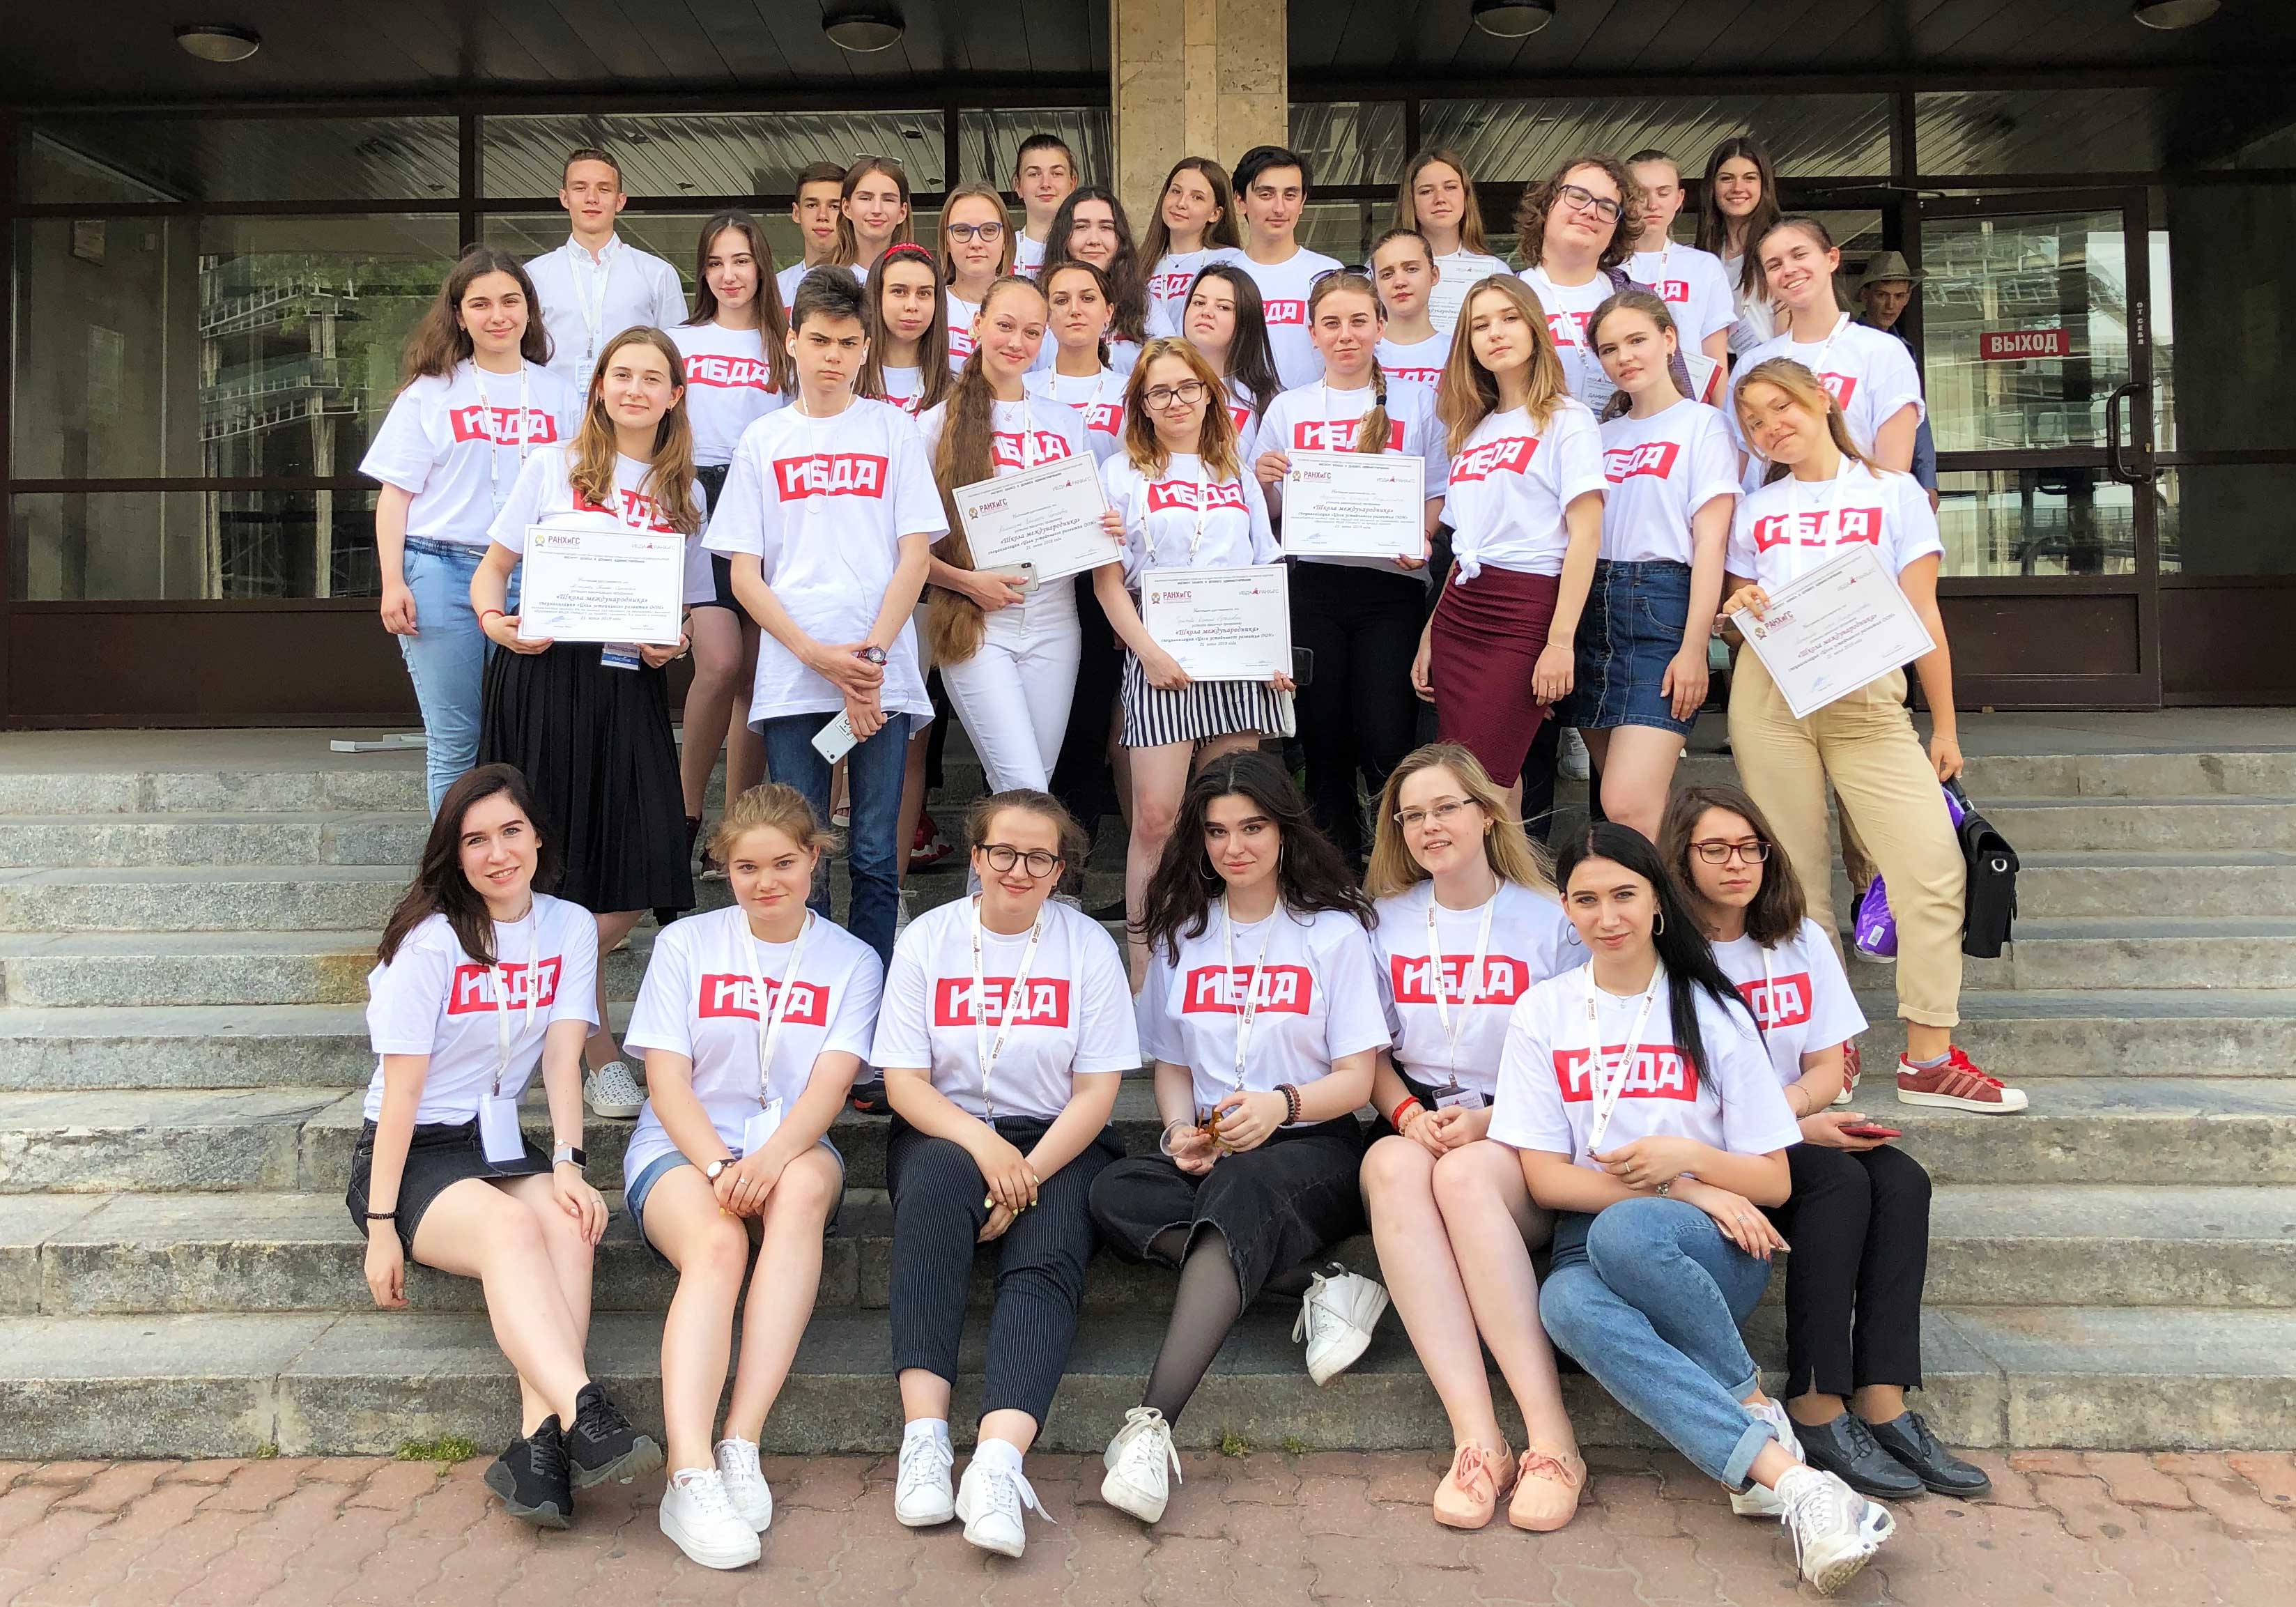 RANEPA Institute of Business Studies (IBS) has held the Second Foreign Affairs School for pupils of the 10th grade (the pre-graduation year in high school), attended by more than 30 young people from different regions of our country